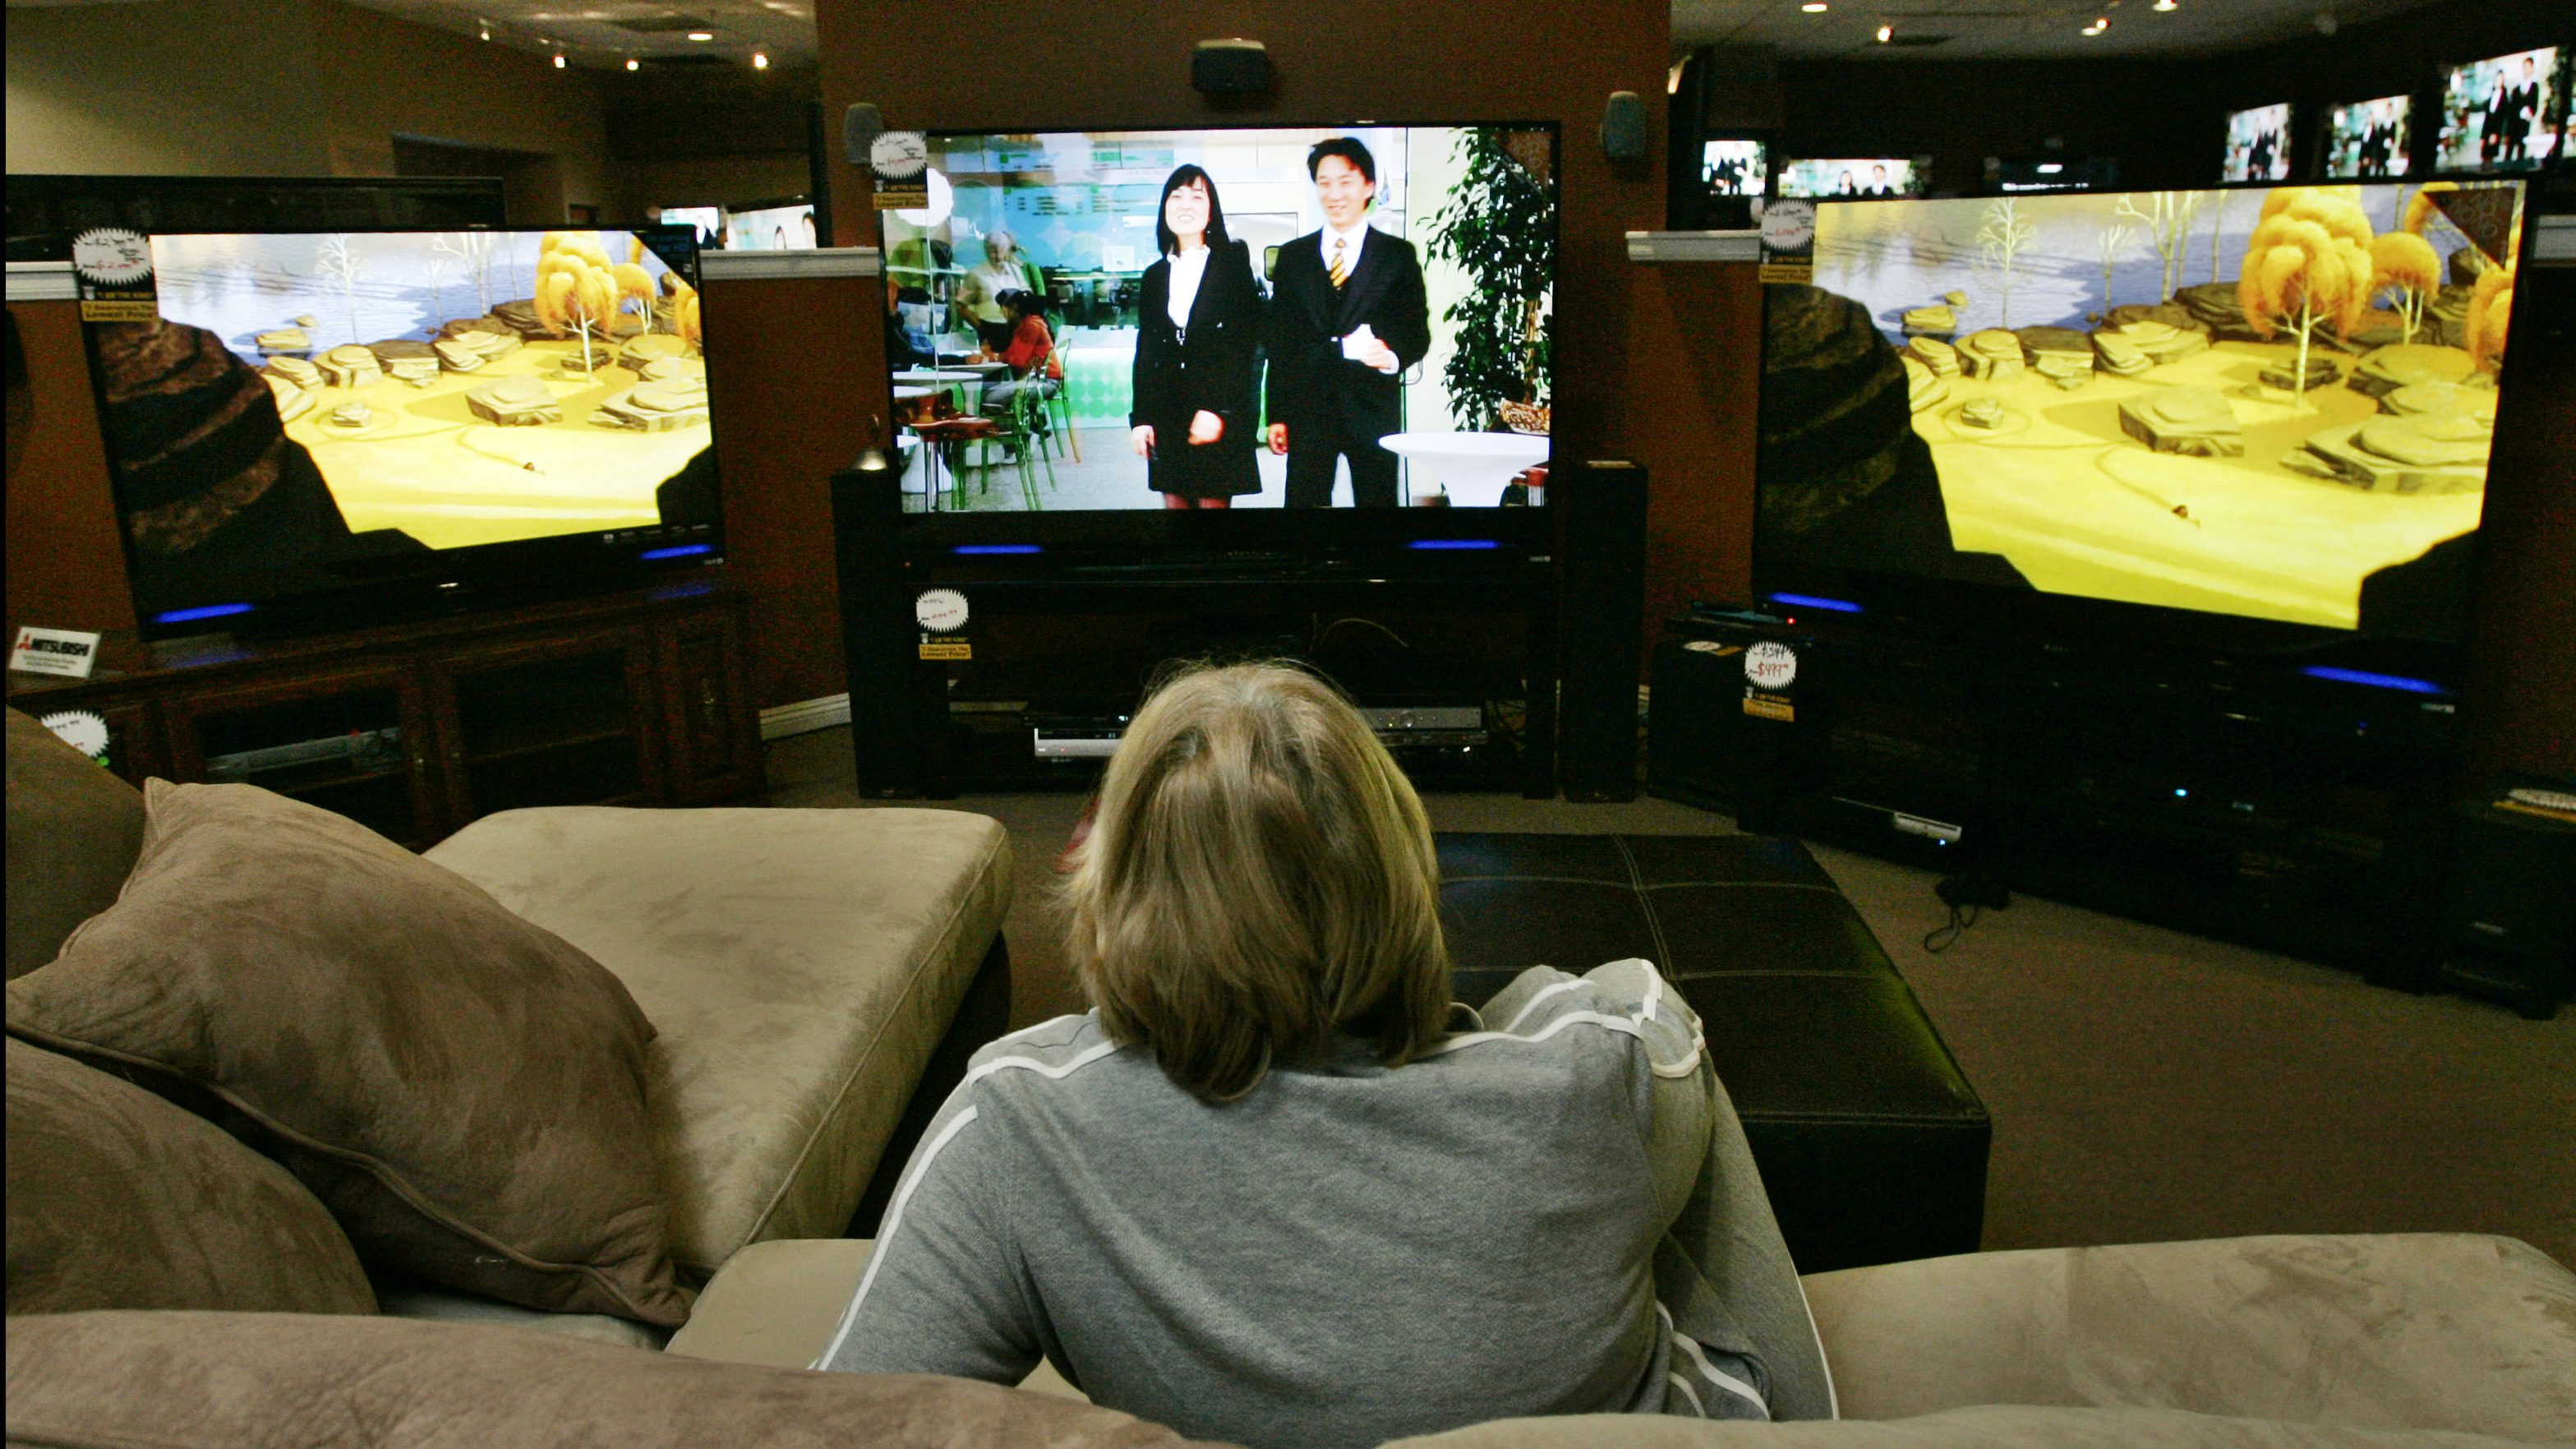 """Mary Addison of Shadow Hills, Calif., checks out televisions and furniture at Paul's """"King of Big Screen"""" TV & Video store in La Habra, Calif., Tuesday, Jan. 29, 2008.  Super Bowl Sunday may be the biggest day of the year for football fans, but it's also a big day for people who sell big screen TVs, recliners and pizza.  (AP Photo/Reed Saxon)"""